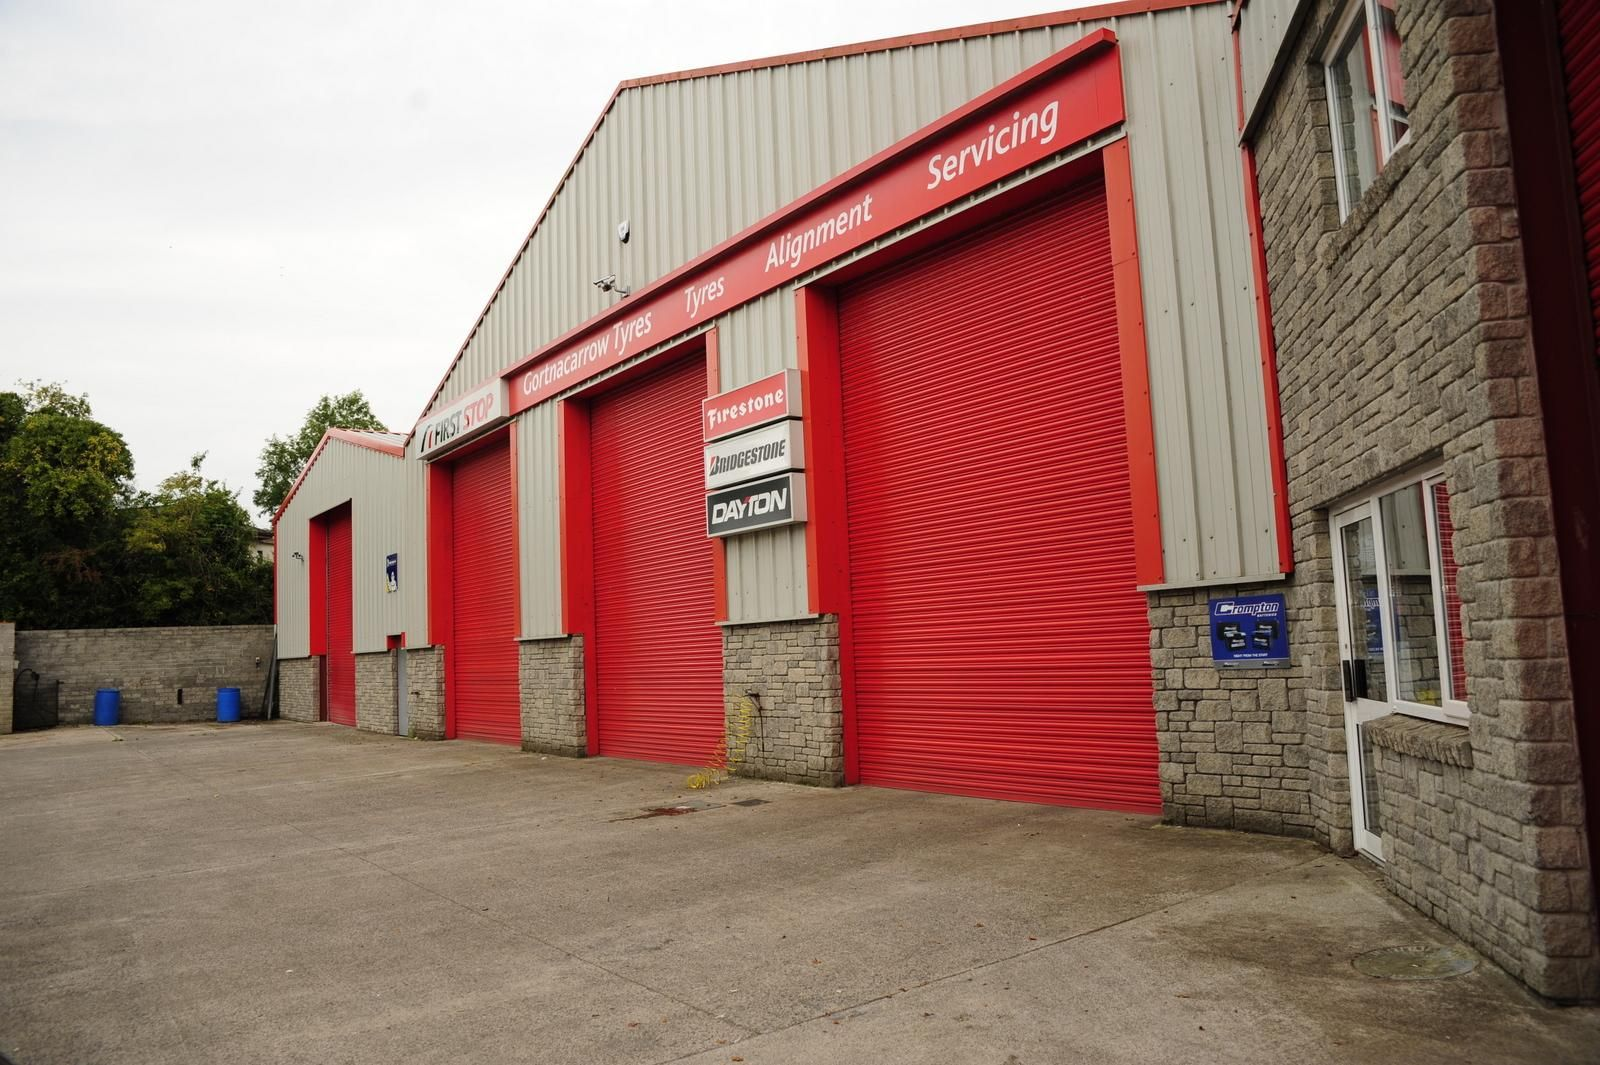 Best Choice Garage Doors Also Manufacture Supply And Fit Their Own High Quality Industrial Doors